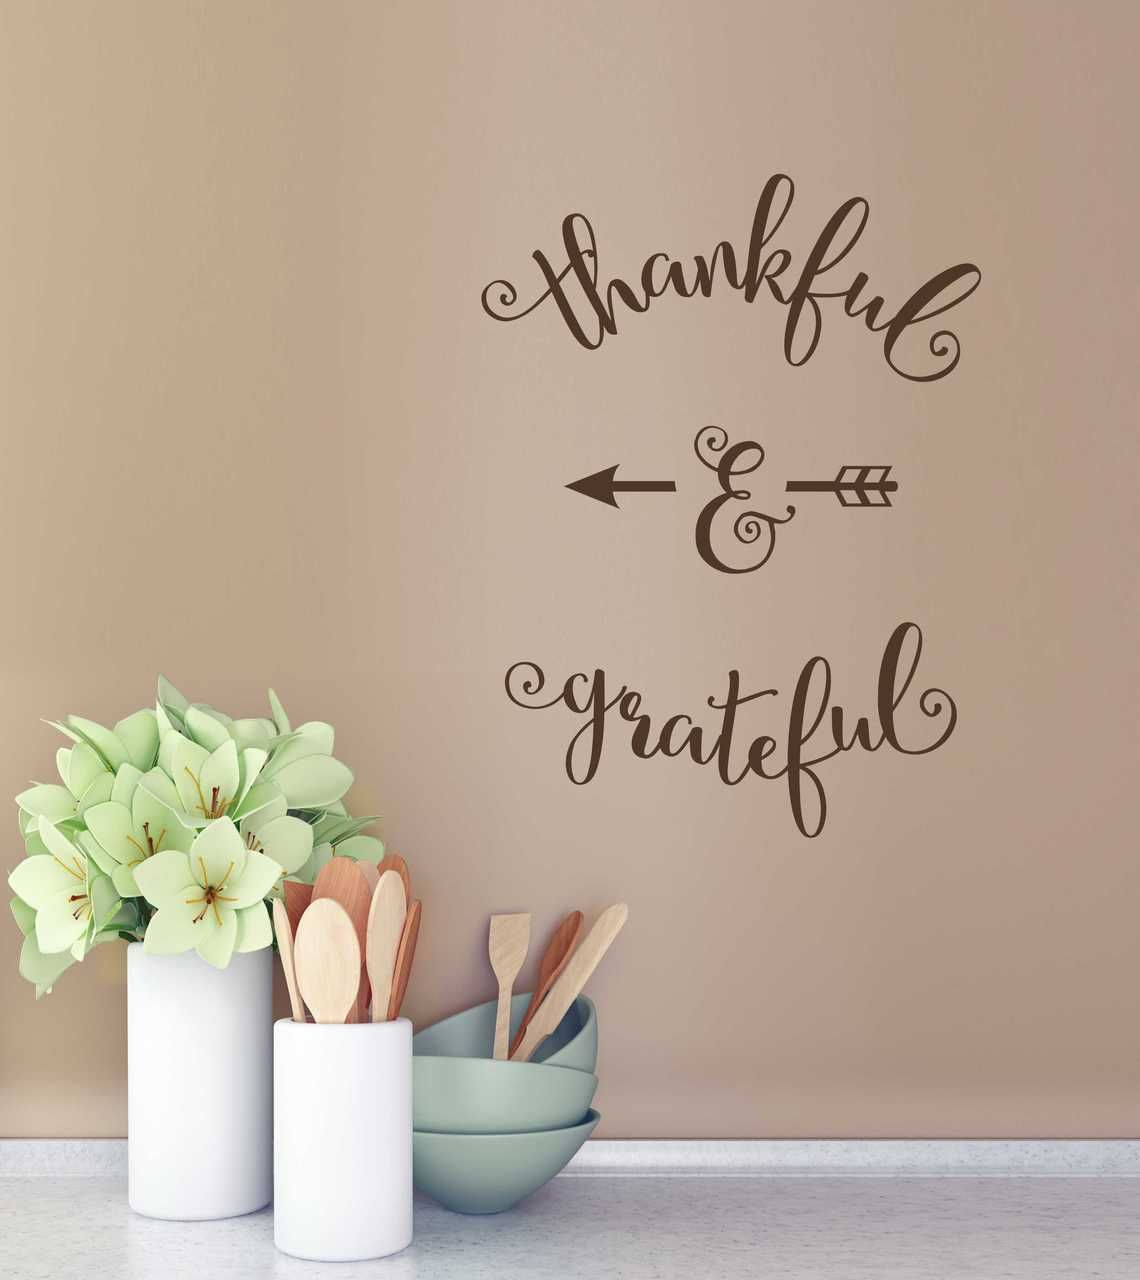 Kitchen Letters For Wall Thankful & Grateful Elegant Vinyl Wall Decals Fall Or Kitchen